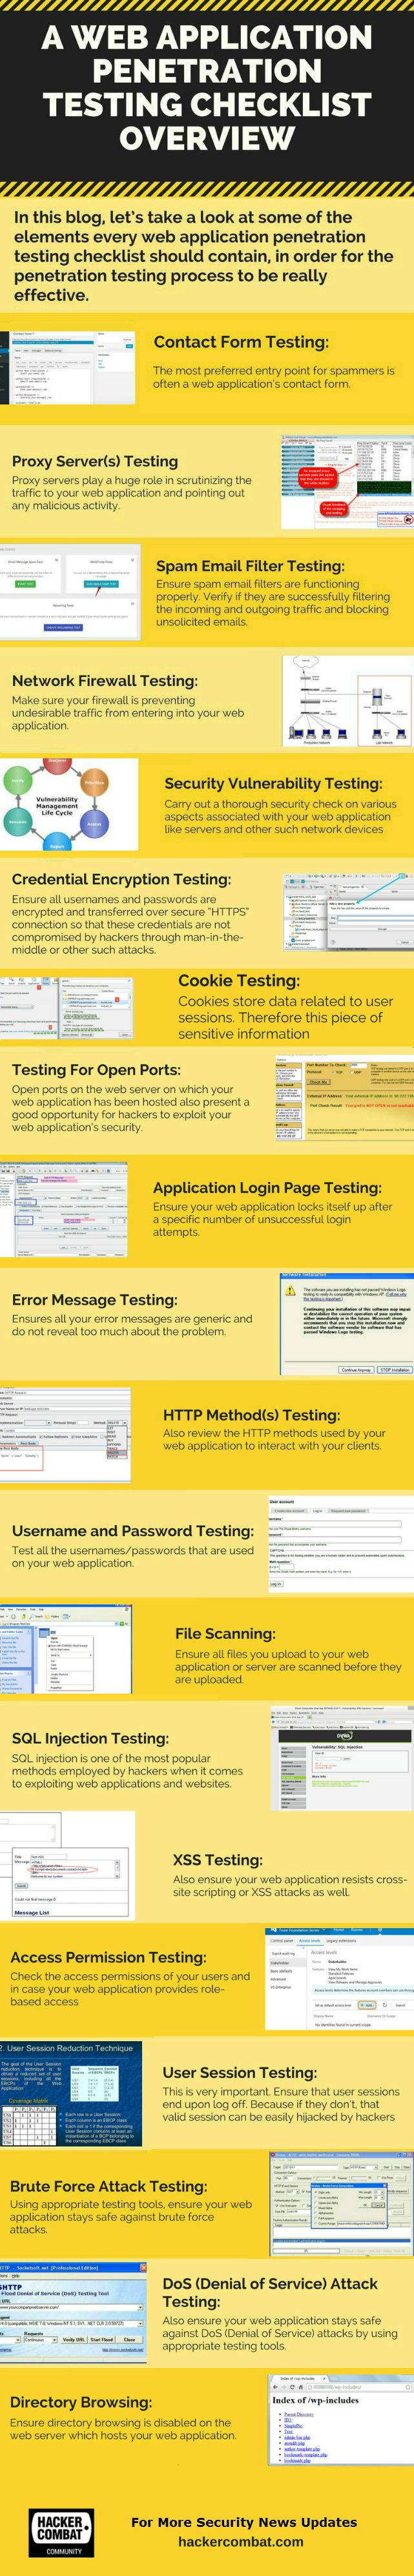 Let's take a look at some of the elements every web application penetration testing checklist should contain, in order for the penetration testing process to be really effective.